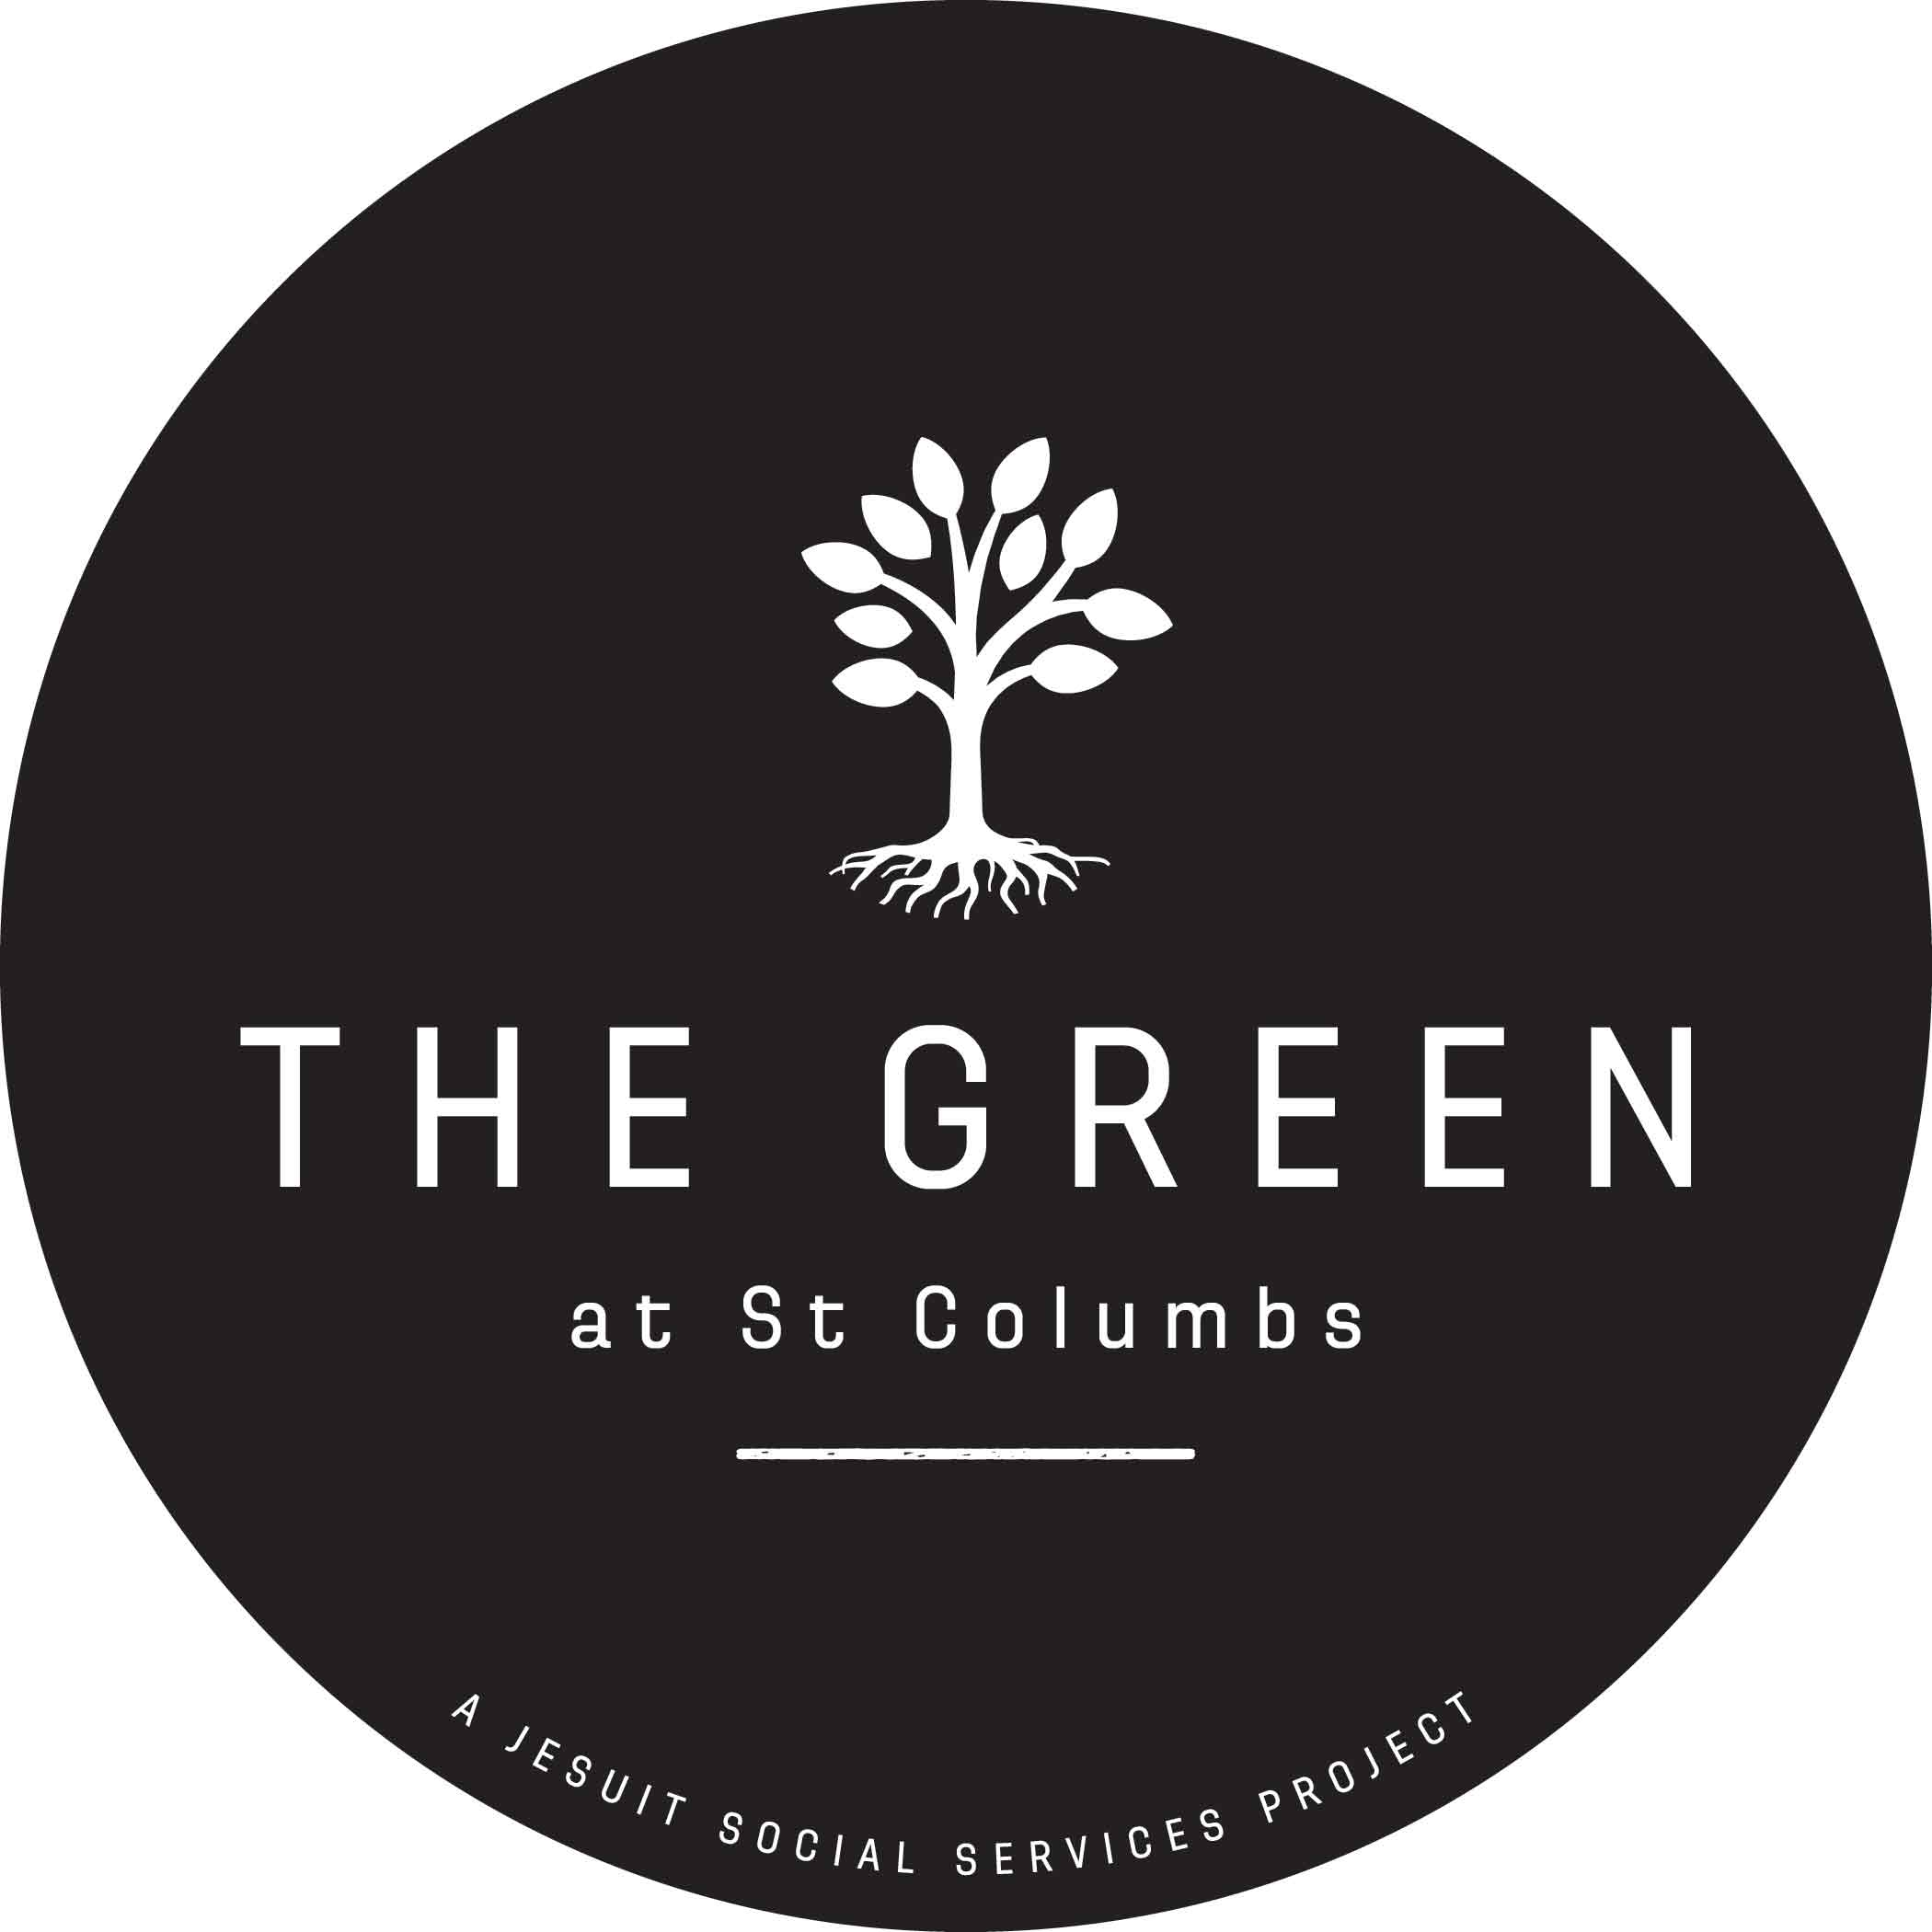 The Green at St. Columbs